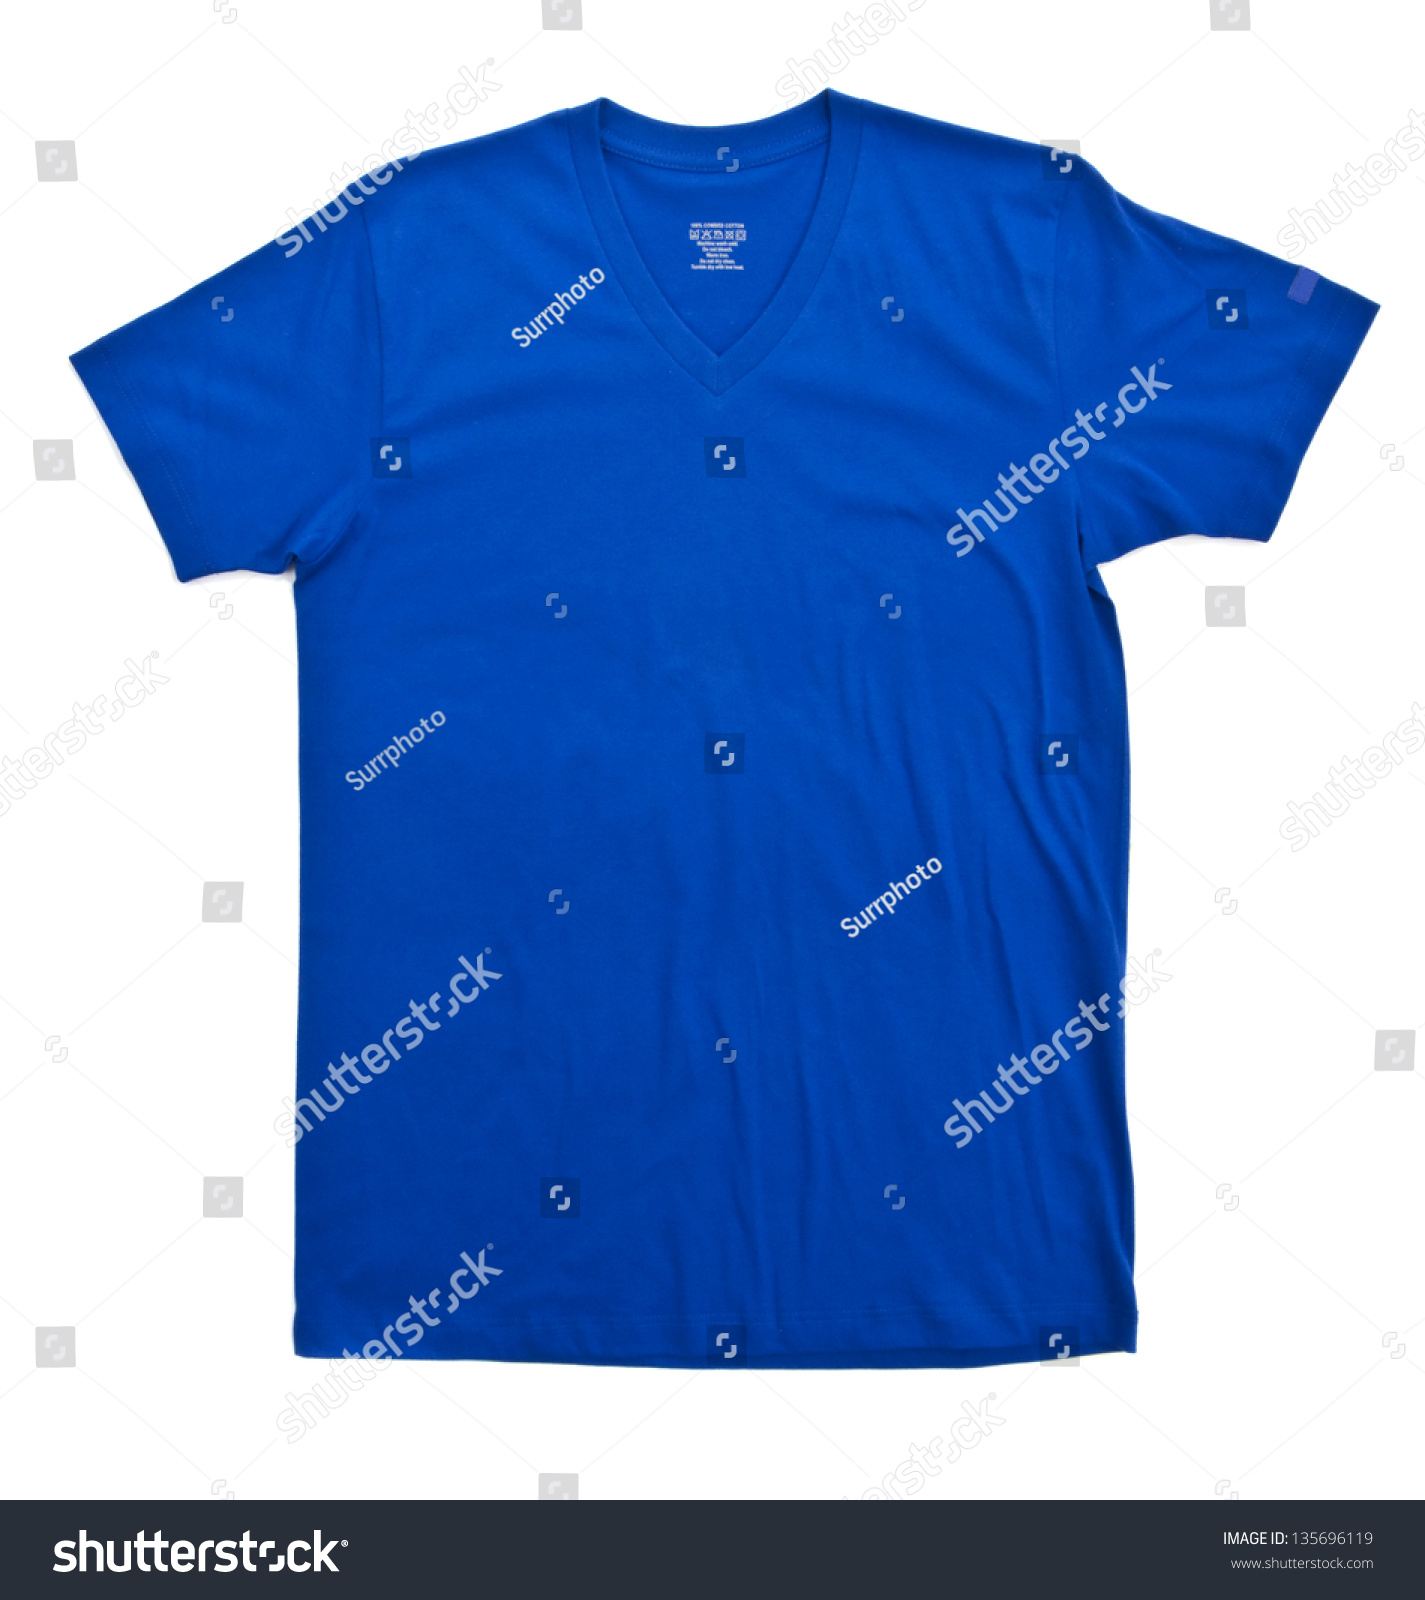 Blue tshirt template ready for your own graphics stock for Blue t shirt template